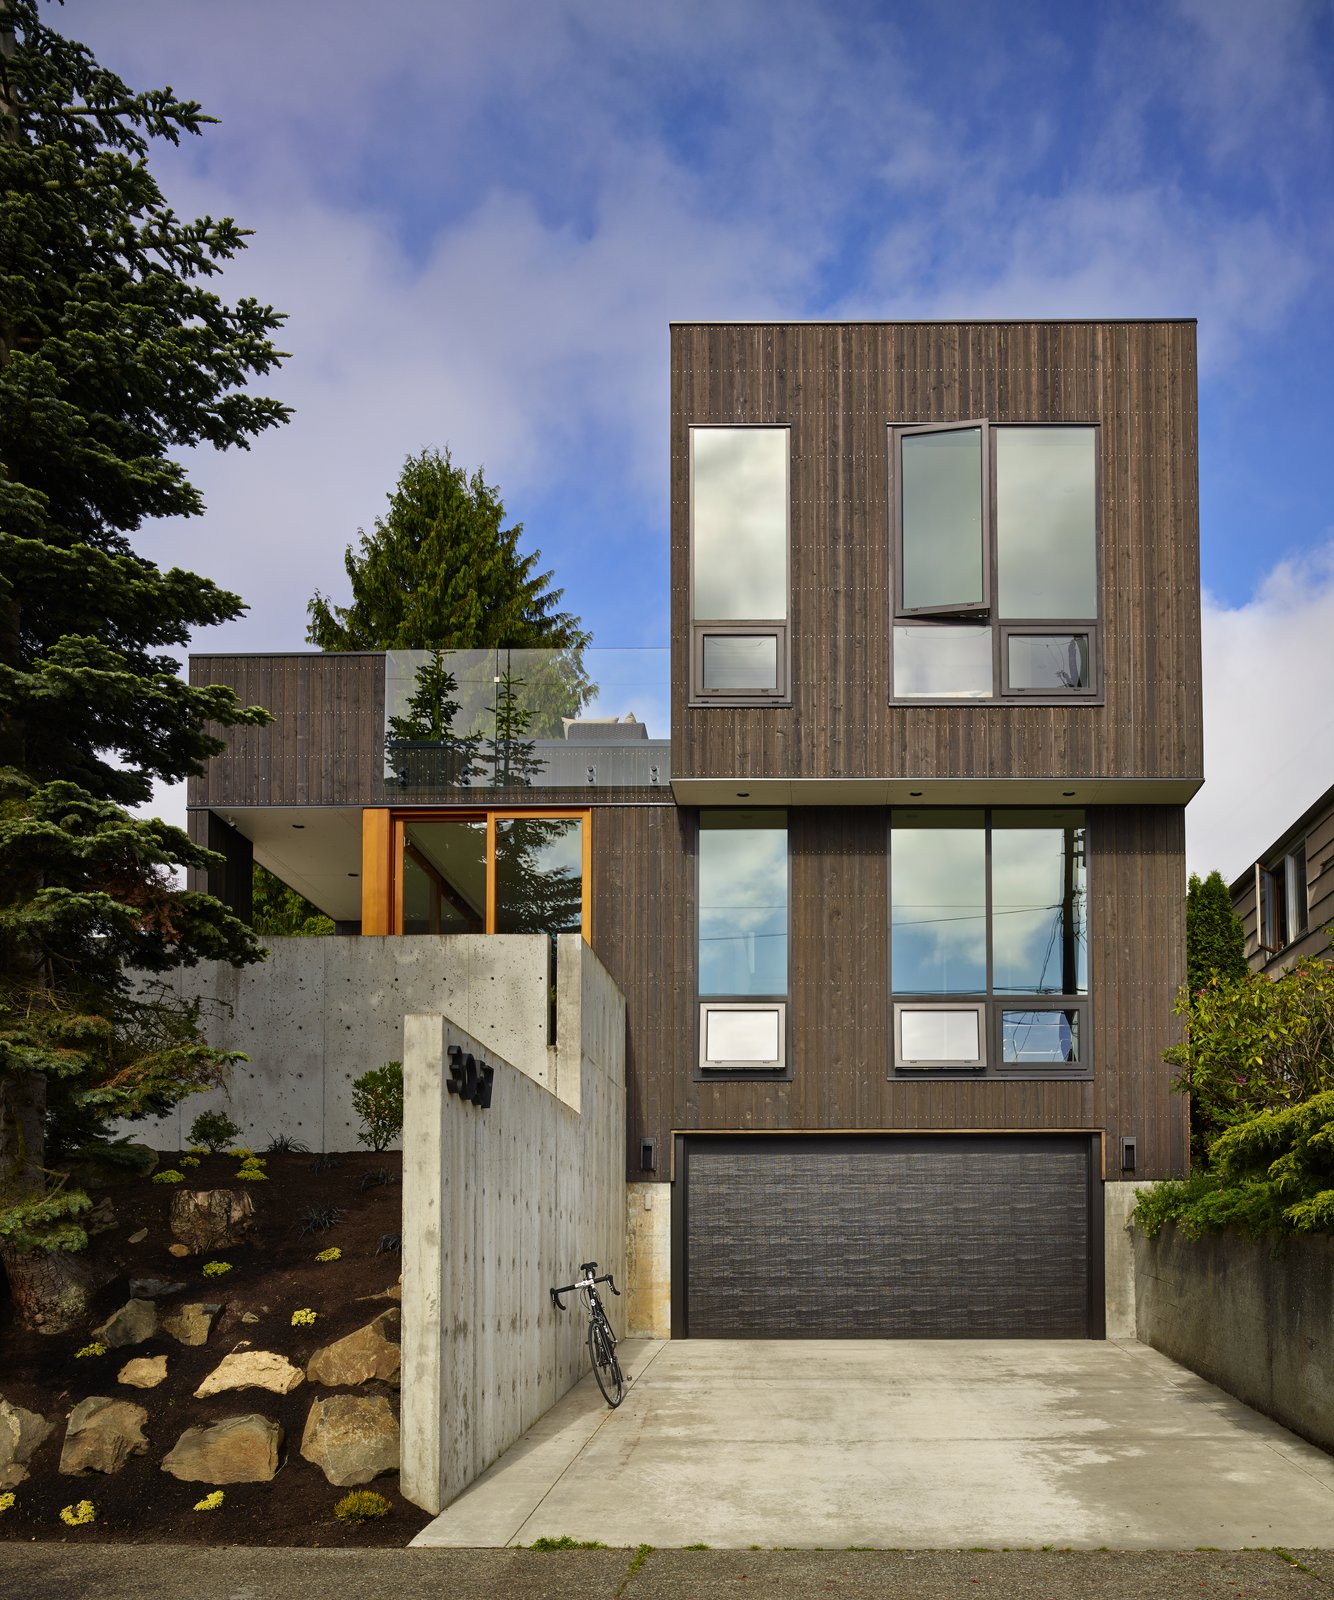 Tagged: Rooftop, Front Yard, Attached Garage, Casement Window Type, Exterior, Boulders, Trees, Hardscapes, Concrete Patio, Porch, Deck, Exterior, House, Concrete Siding Material, and Wood Siding Material.  BLK_LAB by Patano Studio Architecure